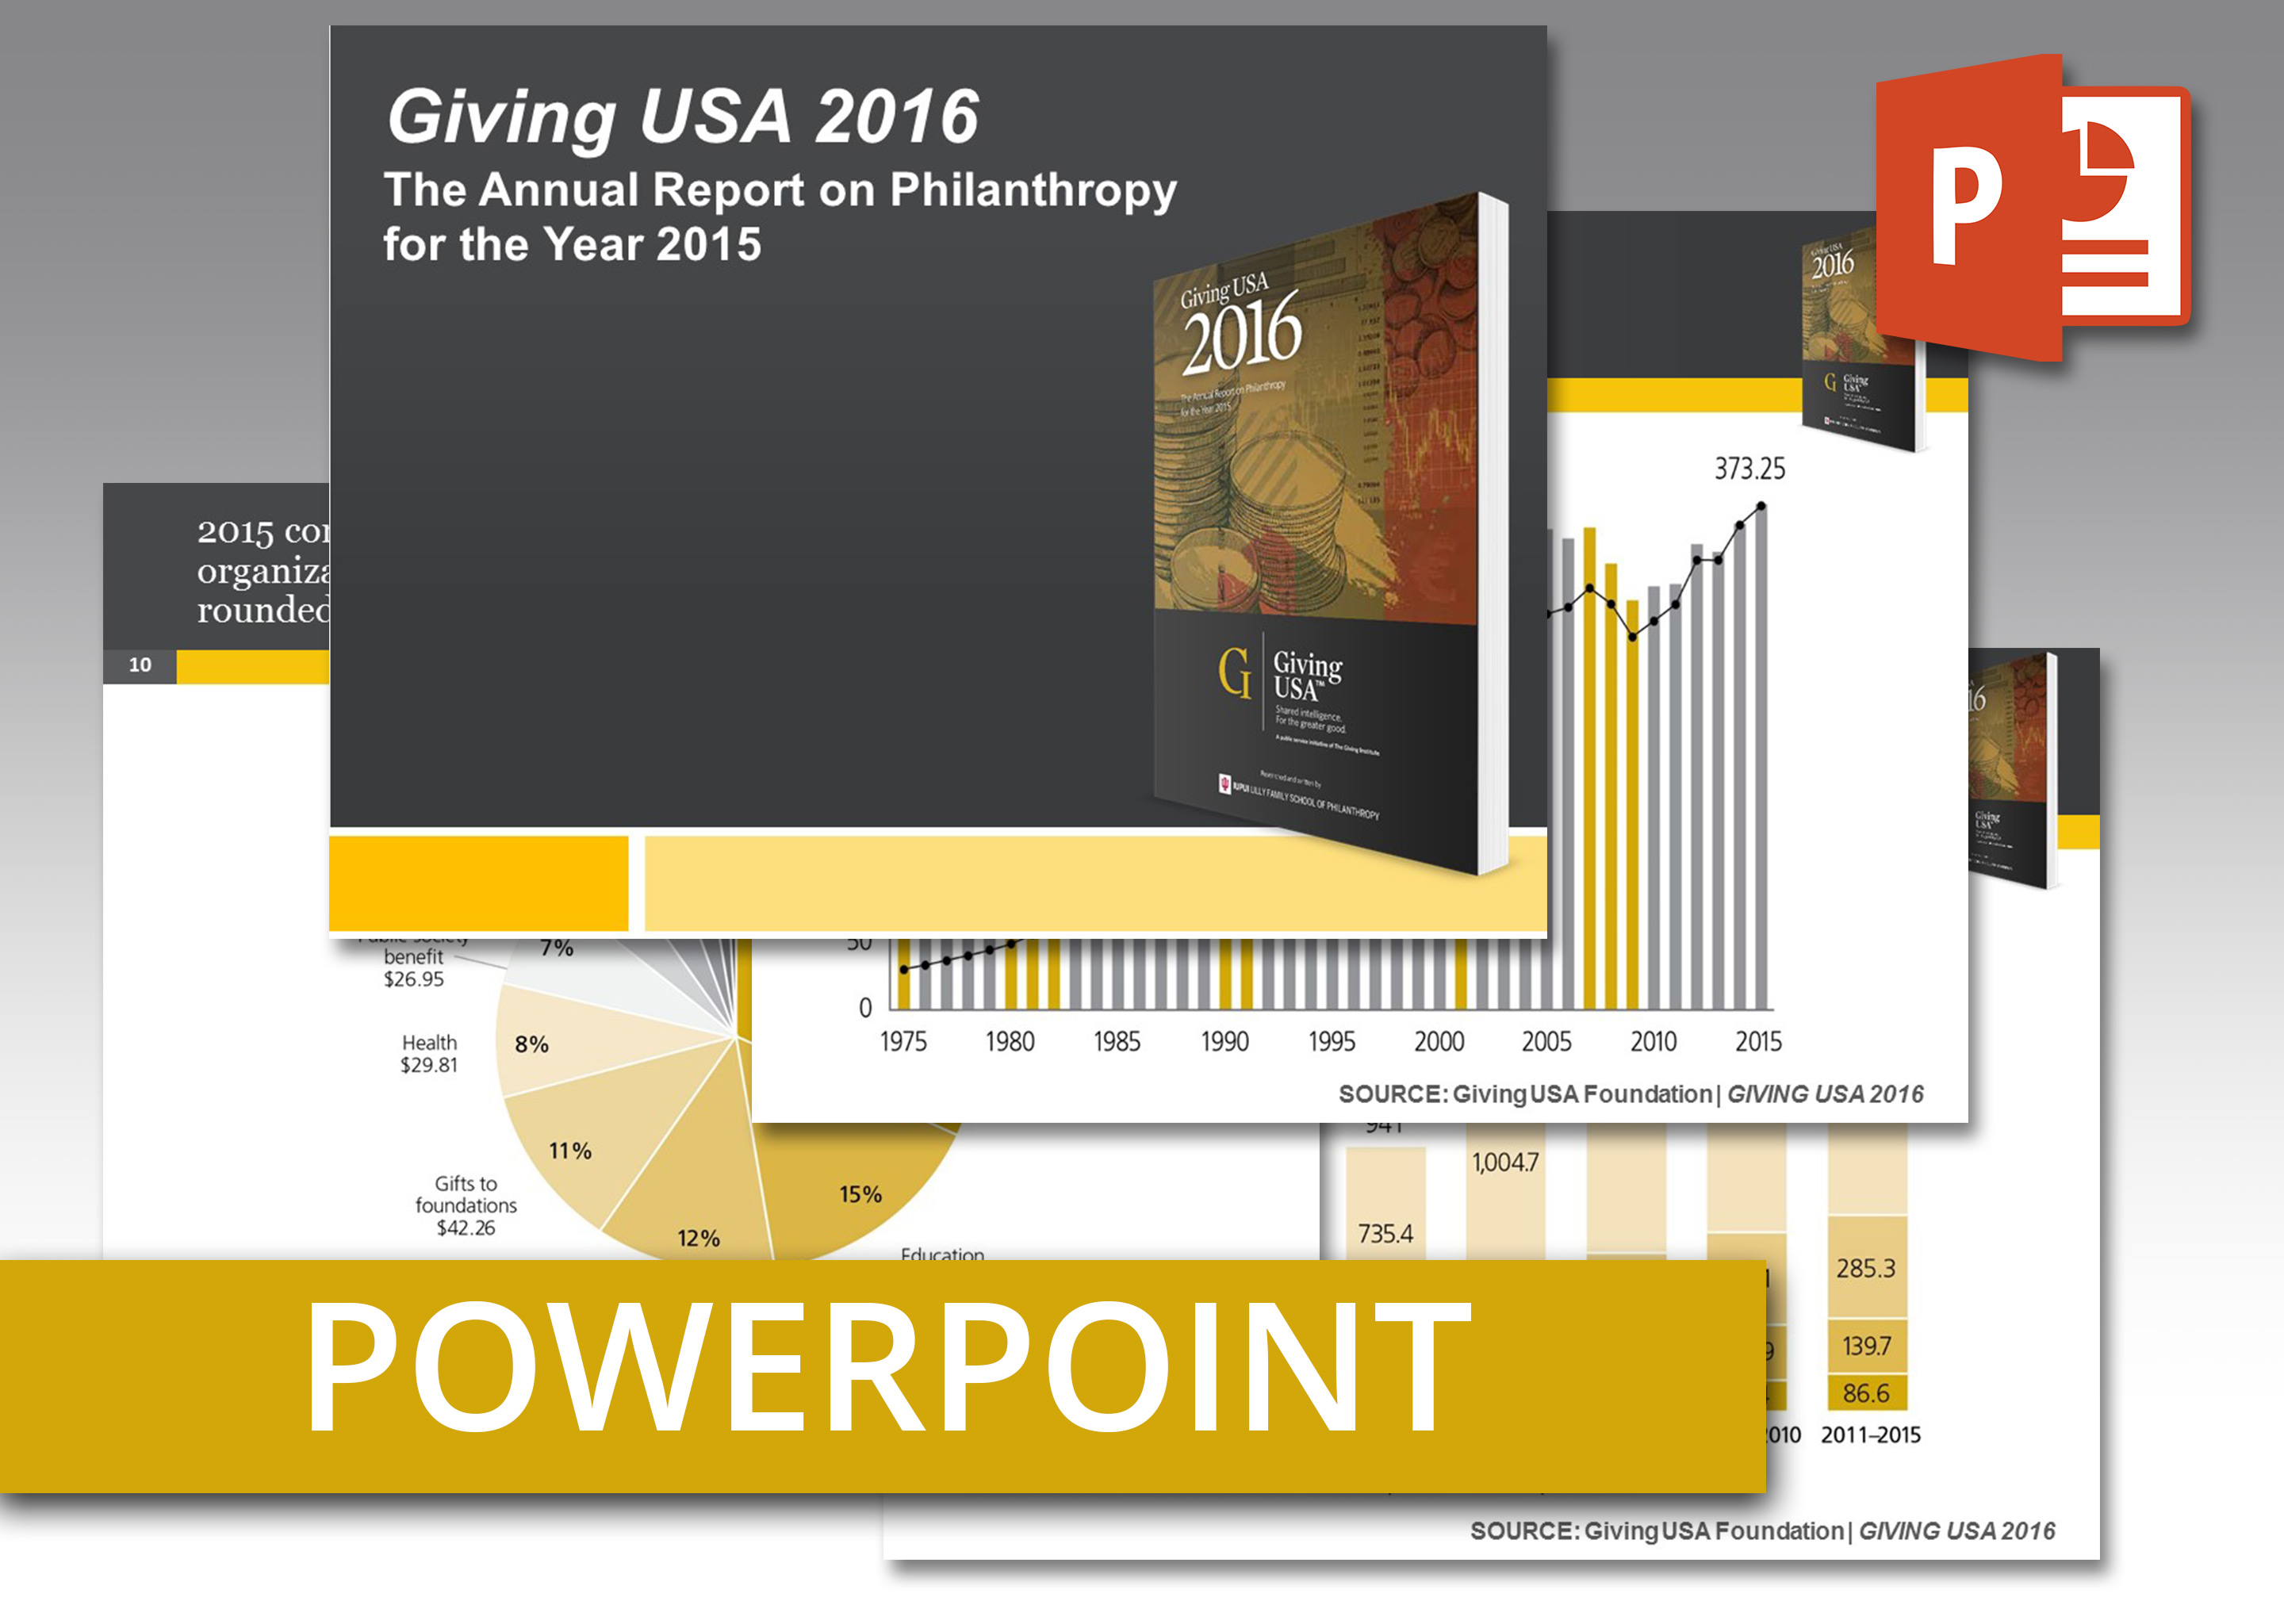 Coolmathgamesus  Marvelous Giving Usa  Powerpoint An Easytouse Presentation Of Report  With Handsome Giving Usa  Powerpoint An Easytouse Presentation Of Report Findings Including Talking Points With Delightful Powerpoint Backgrounds Science Also European Explorers Powerpoint In Addition Life After Death By Powerpoint Don Mcmillan And Bad Tempered Ladybird Powerpoint As Well As How To Learn Powerpoint Quickly Additionally Retirement Planning Powerpoint From Givingusaorg With Coolmathgamesus  Handsome Giving Usa  Powerpoint An Easytouse Presentation Of Report  With Delightful Giving Usa  Powerpoint An Easytouse Presentation Of Report Findings Including Talking Points And Marvelous Powerpoint Backgrounds Science Also European Explorers Powerpoint In Addition Life After Death By Powerpoint Don Mcmillan From Givingusaorg